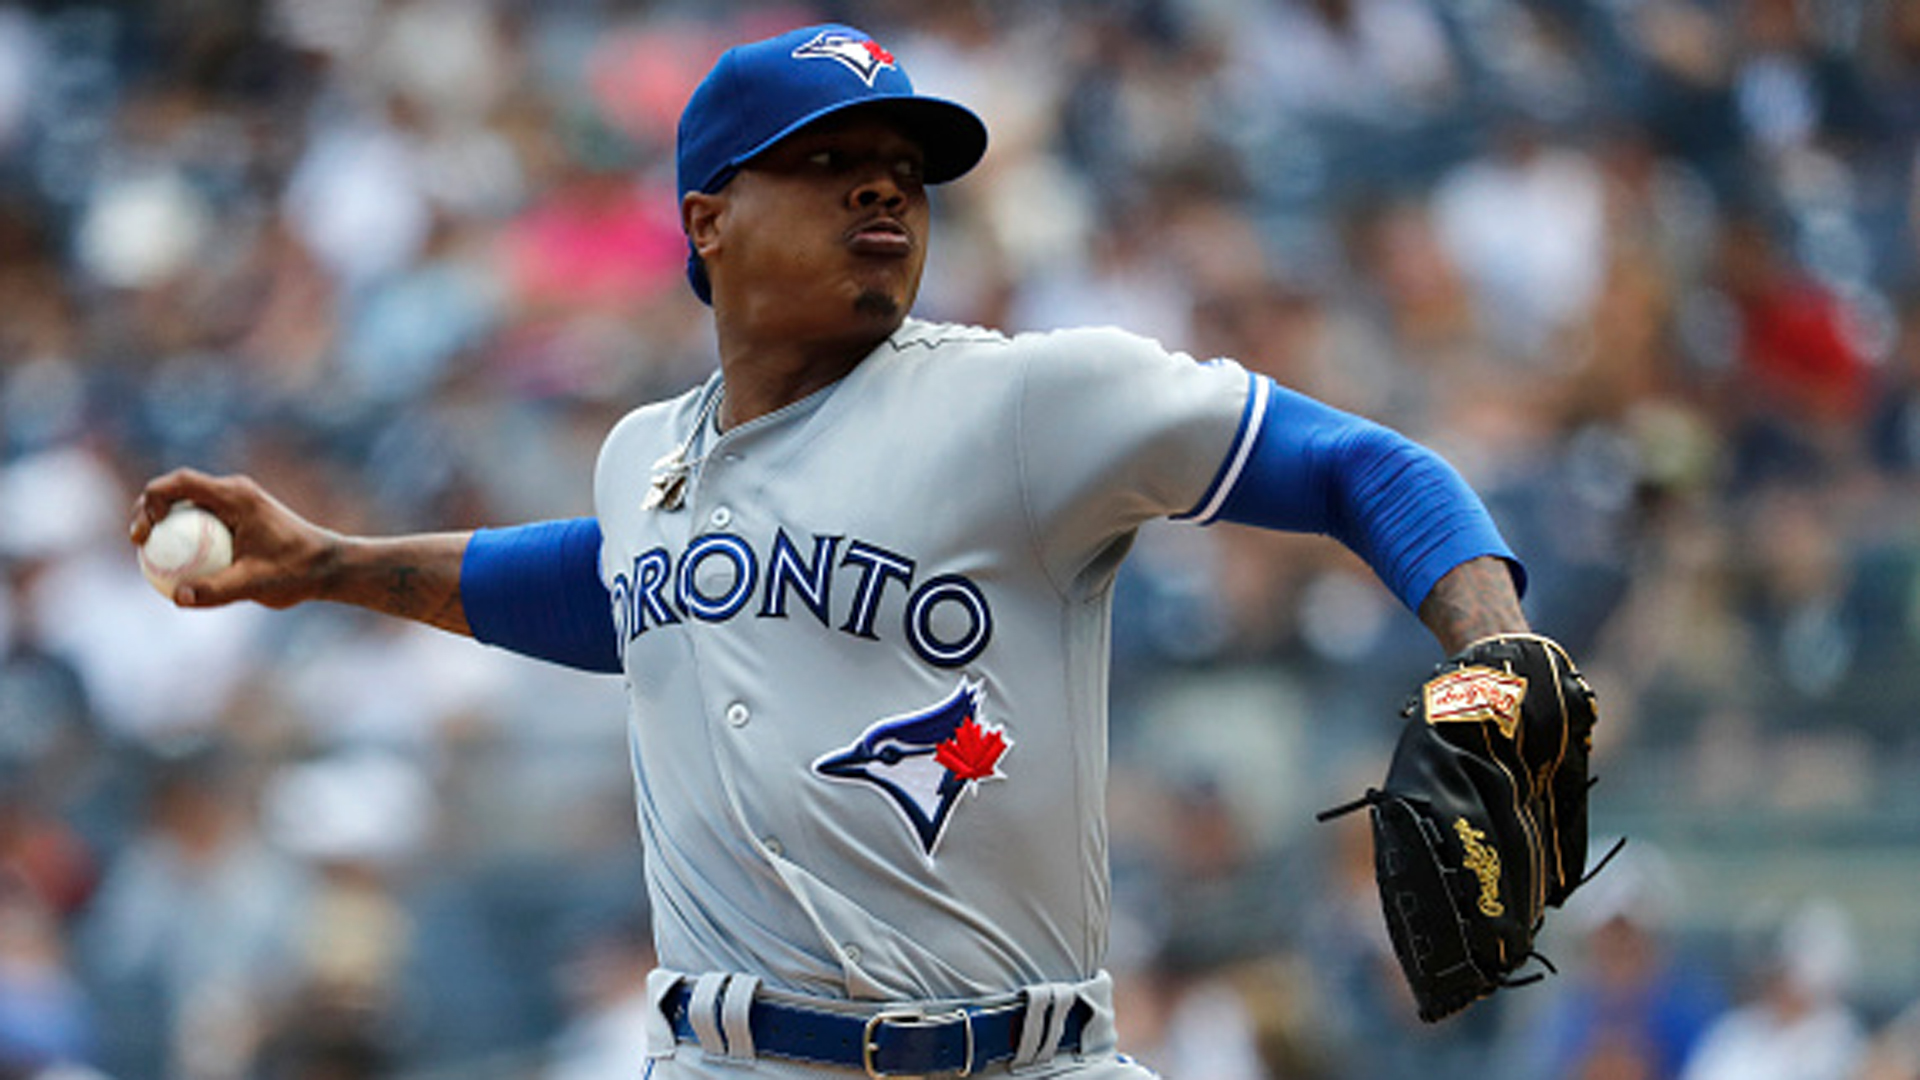 Phillips: I'd be surprised if Stroman makes another start for Blue Jays